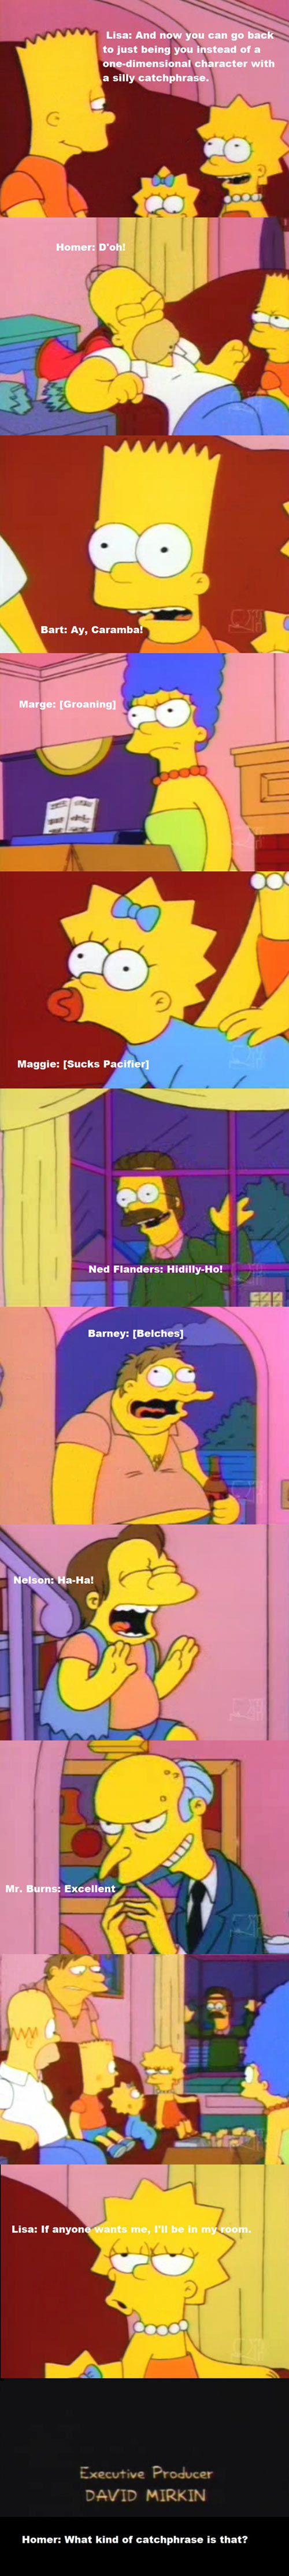 funny-The-Simpsons-Lisa-catchphrase